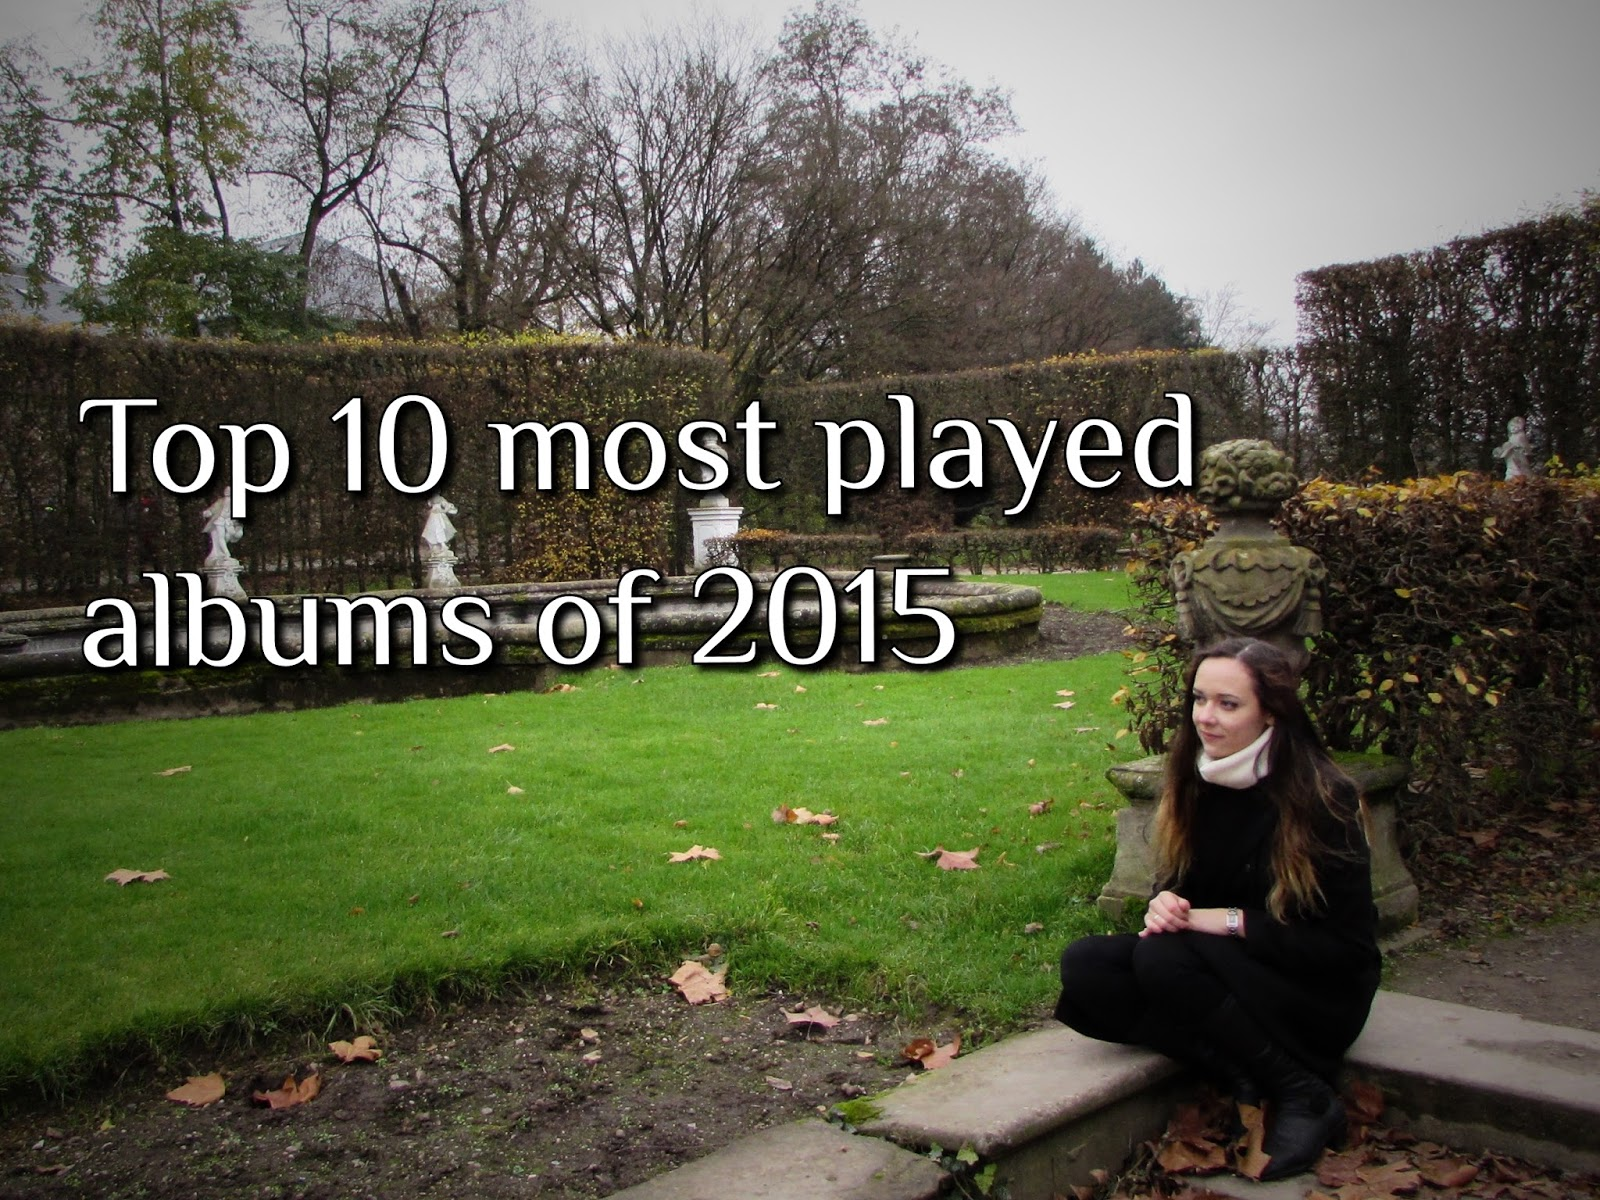 Top 10 most played albums of 2015